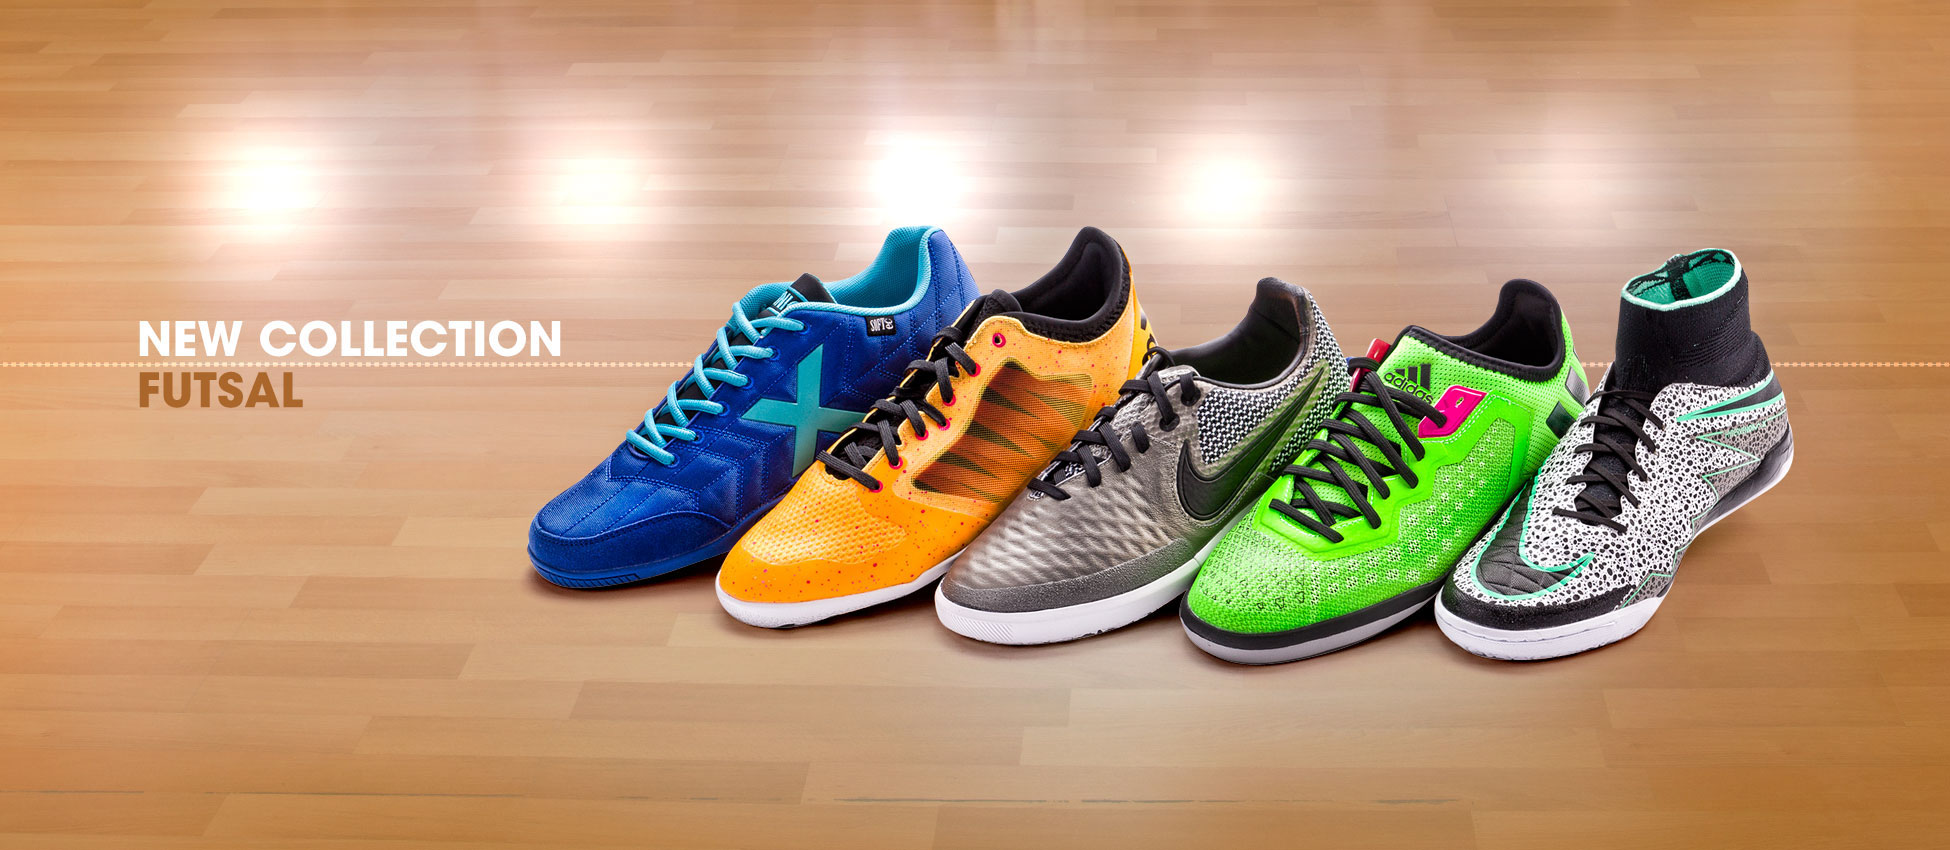 New Collection Futsal 2016